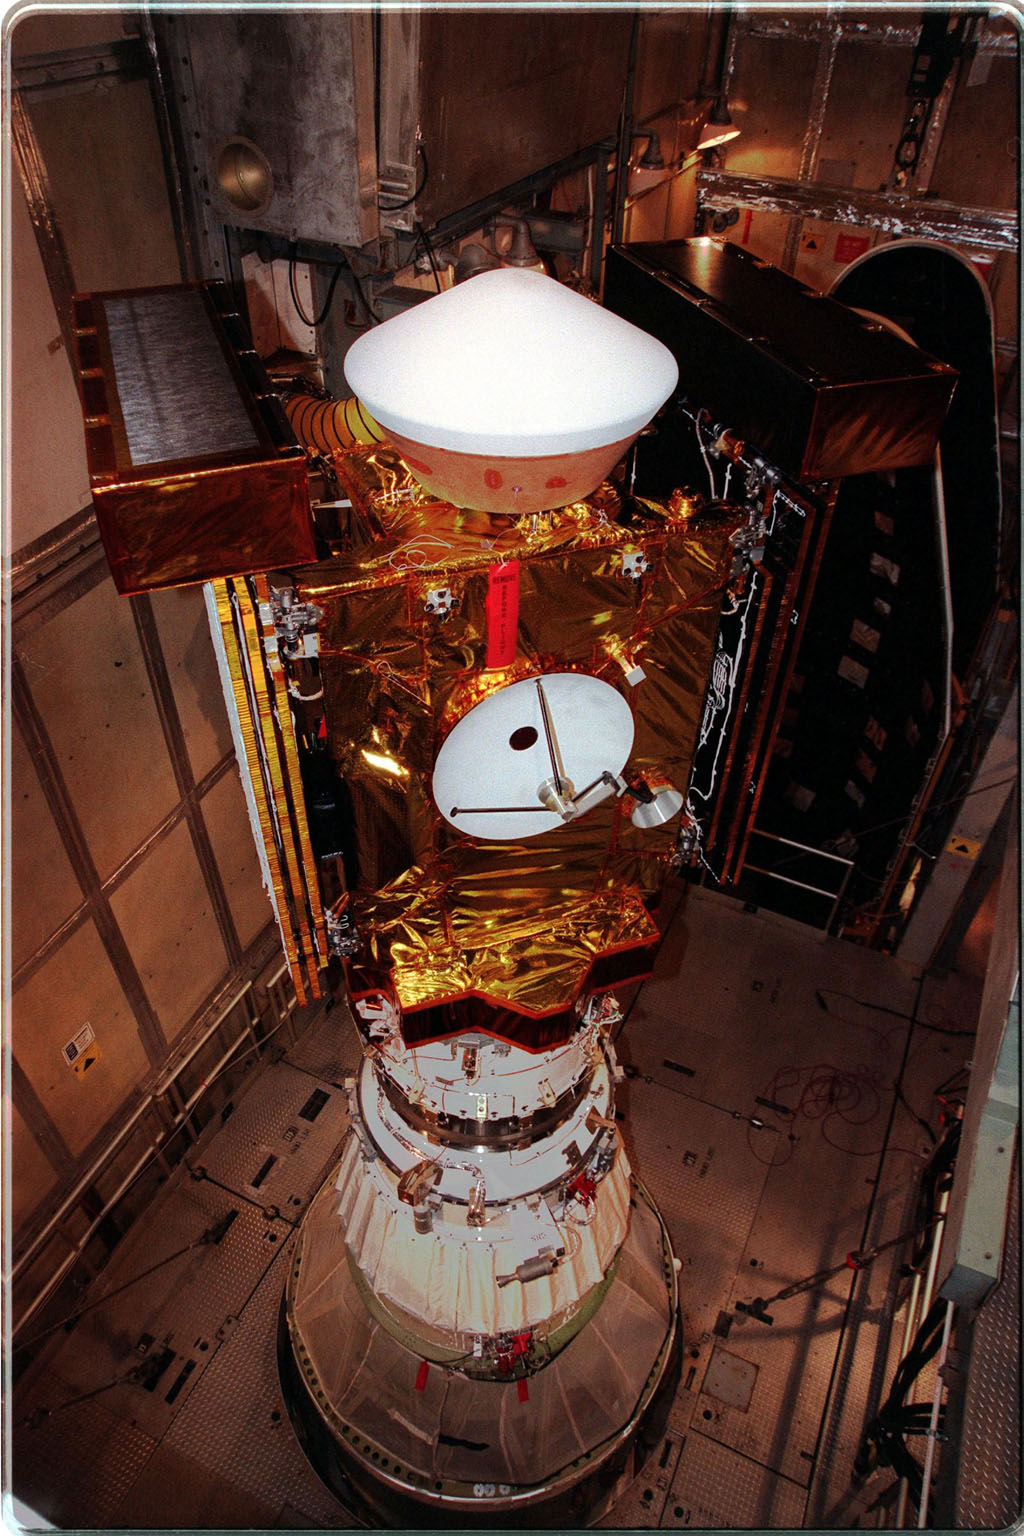 At Launch Pad 17-A, Cape Canaveral Air Station, the Stardust spacecraft waits for installation of the fairing (behind, right) that will enclose the spacecraft and the upper stage of the Boeing Delta II rocket. Targeted for launch at 4:06:42 p.m. on Feb. 6, Stardust is destined for a close encounter with the comet Wild 2 in January 2004. Using a silicon-based substance called aerogel, Stardust will capture comet particles flying off the nucleus of the comet. The spacecraft also will bring back samples of interstellar dust. These materials consist of ancient pre-solar interstellar grains and other remnants left over from the formation of the solar system. Scientists expect their analysis to provide important insights into the evolution of the sun and planets and possibly into the origin of life itself. The collected samples will return to Earth in a sample return capsule to be jettisoned as Stardust swings by Earth in January 2006